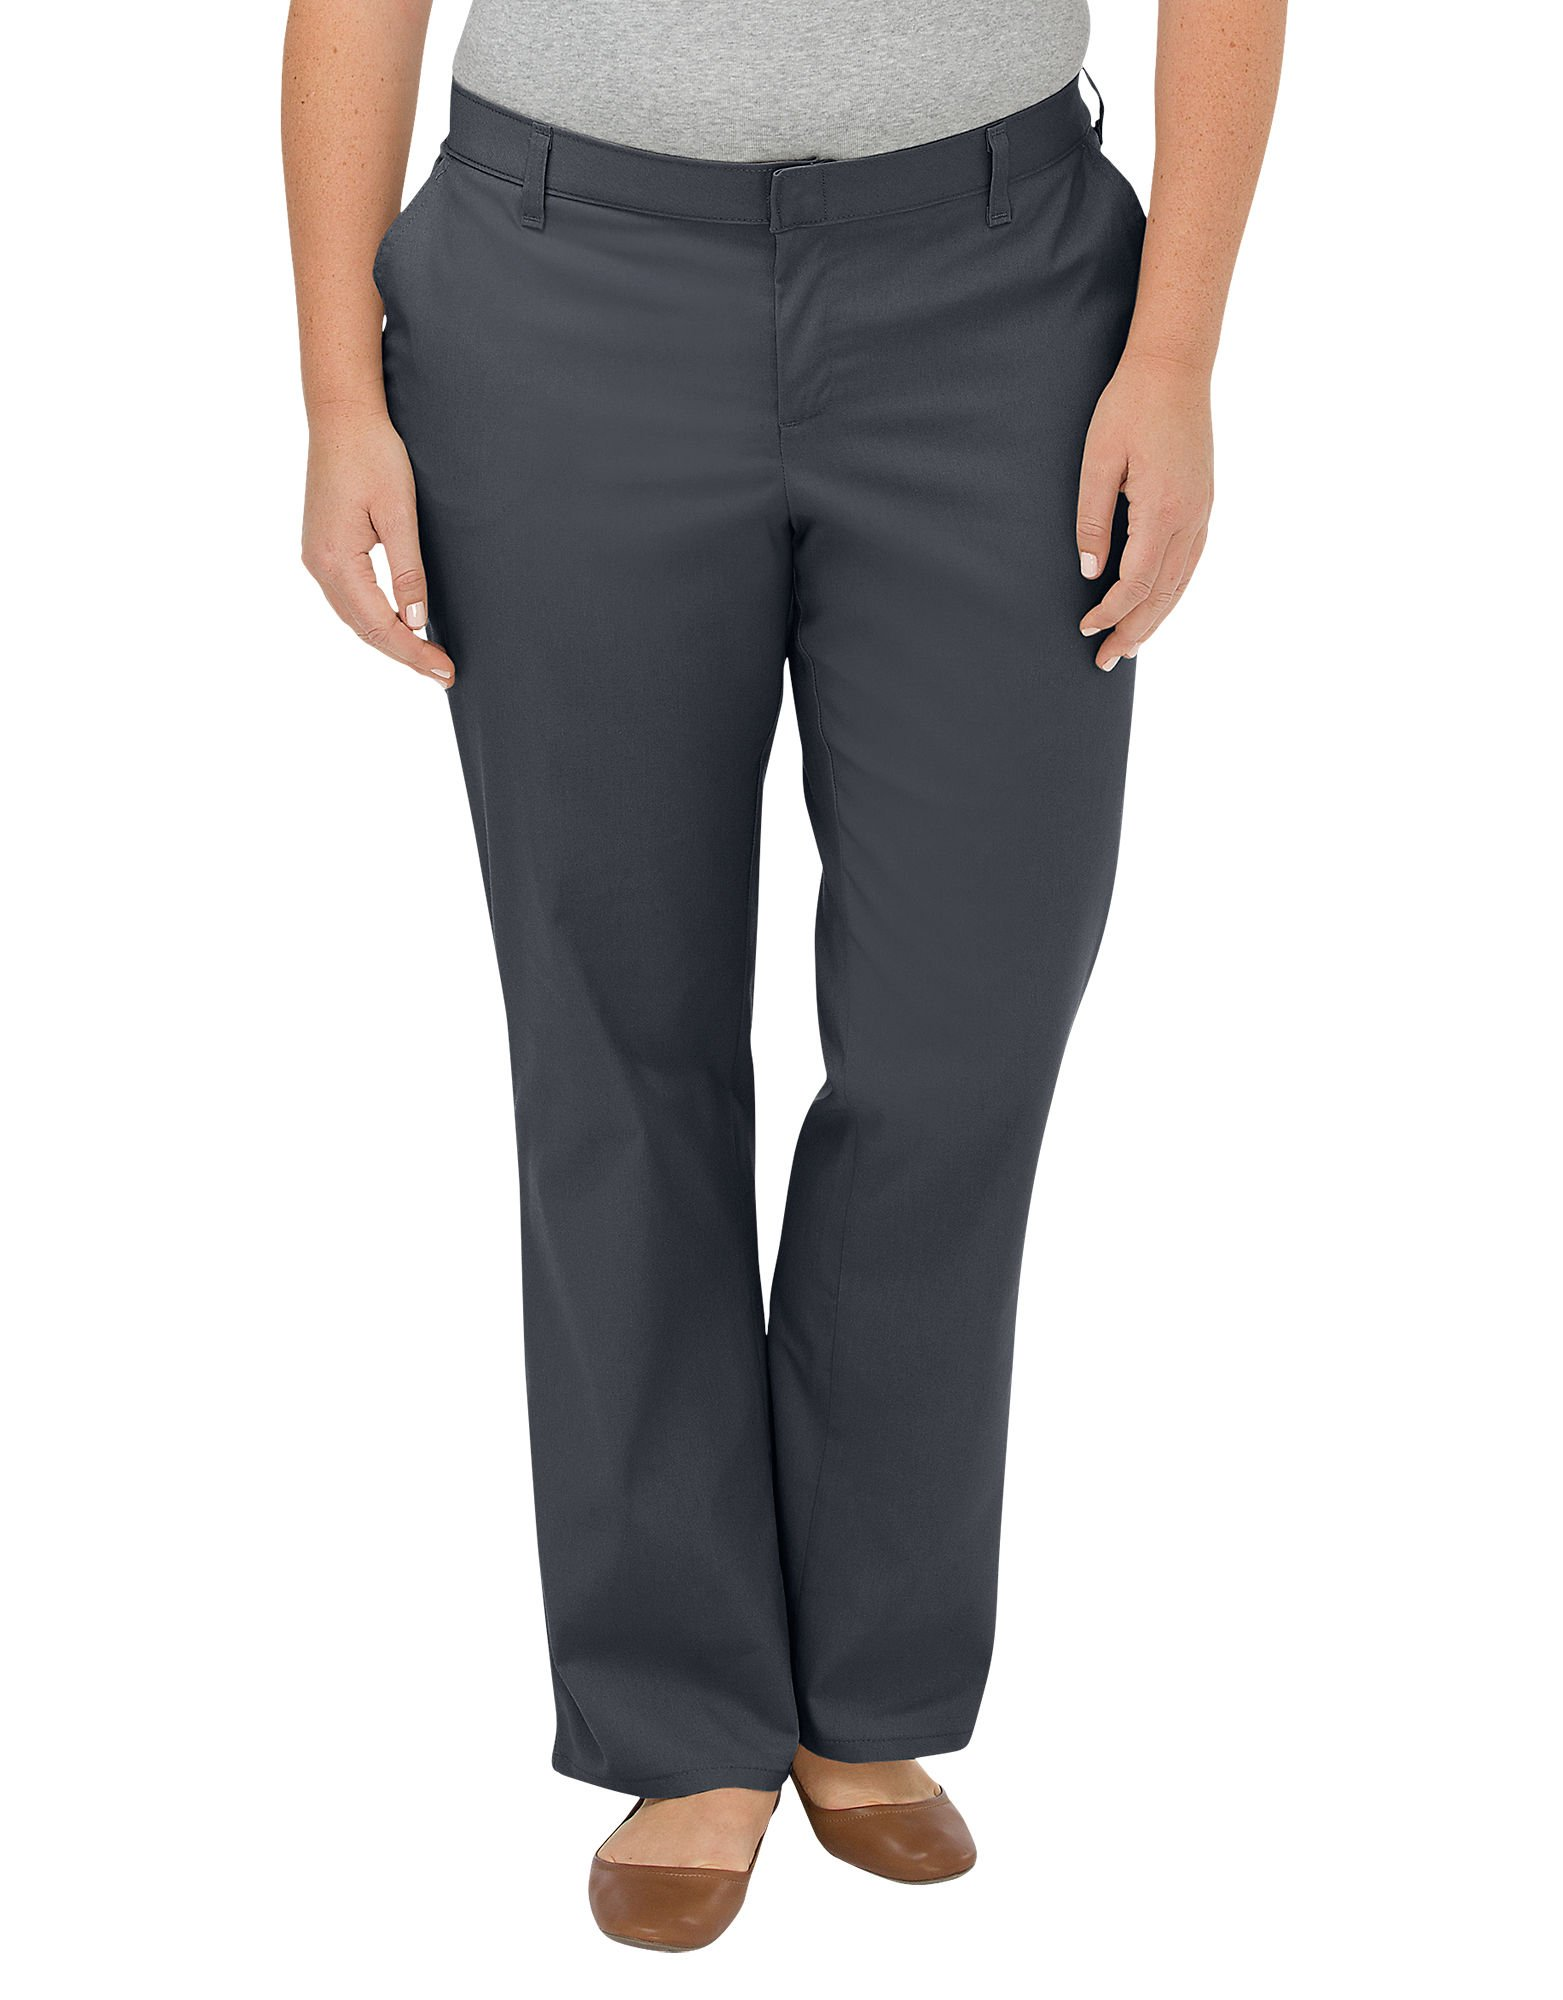 Dickies Women's Plus-Size Wrinkle Resistant Flat Front Twill Pant with Stain Finish Charcoal 18W Unhemmed